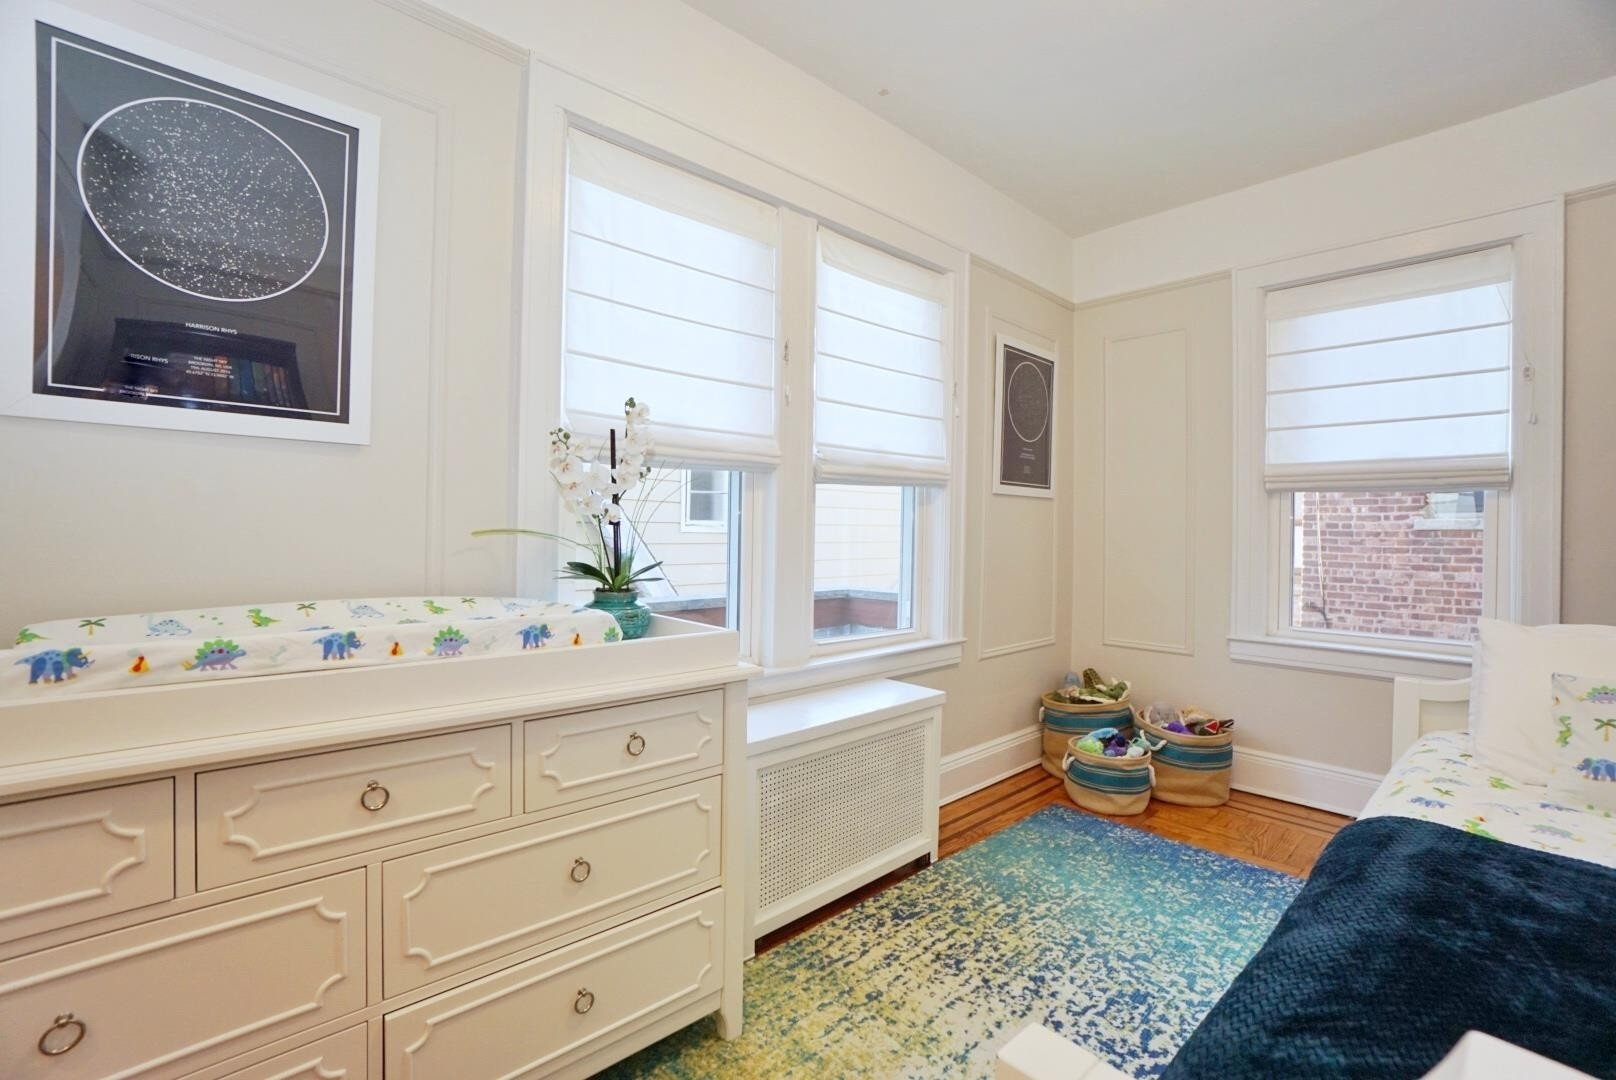 14. Single Family Townhouse for Sale at 1684 RYDER ST , TOWNHOUSE Marine Park, Brooklyn, NY 11234